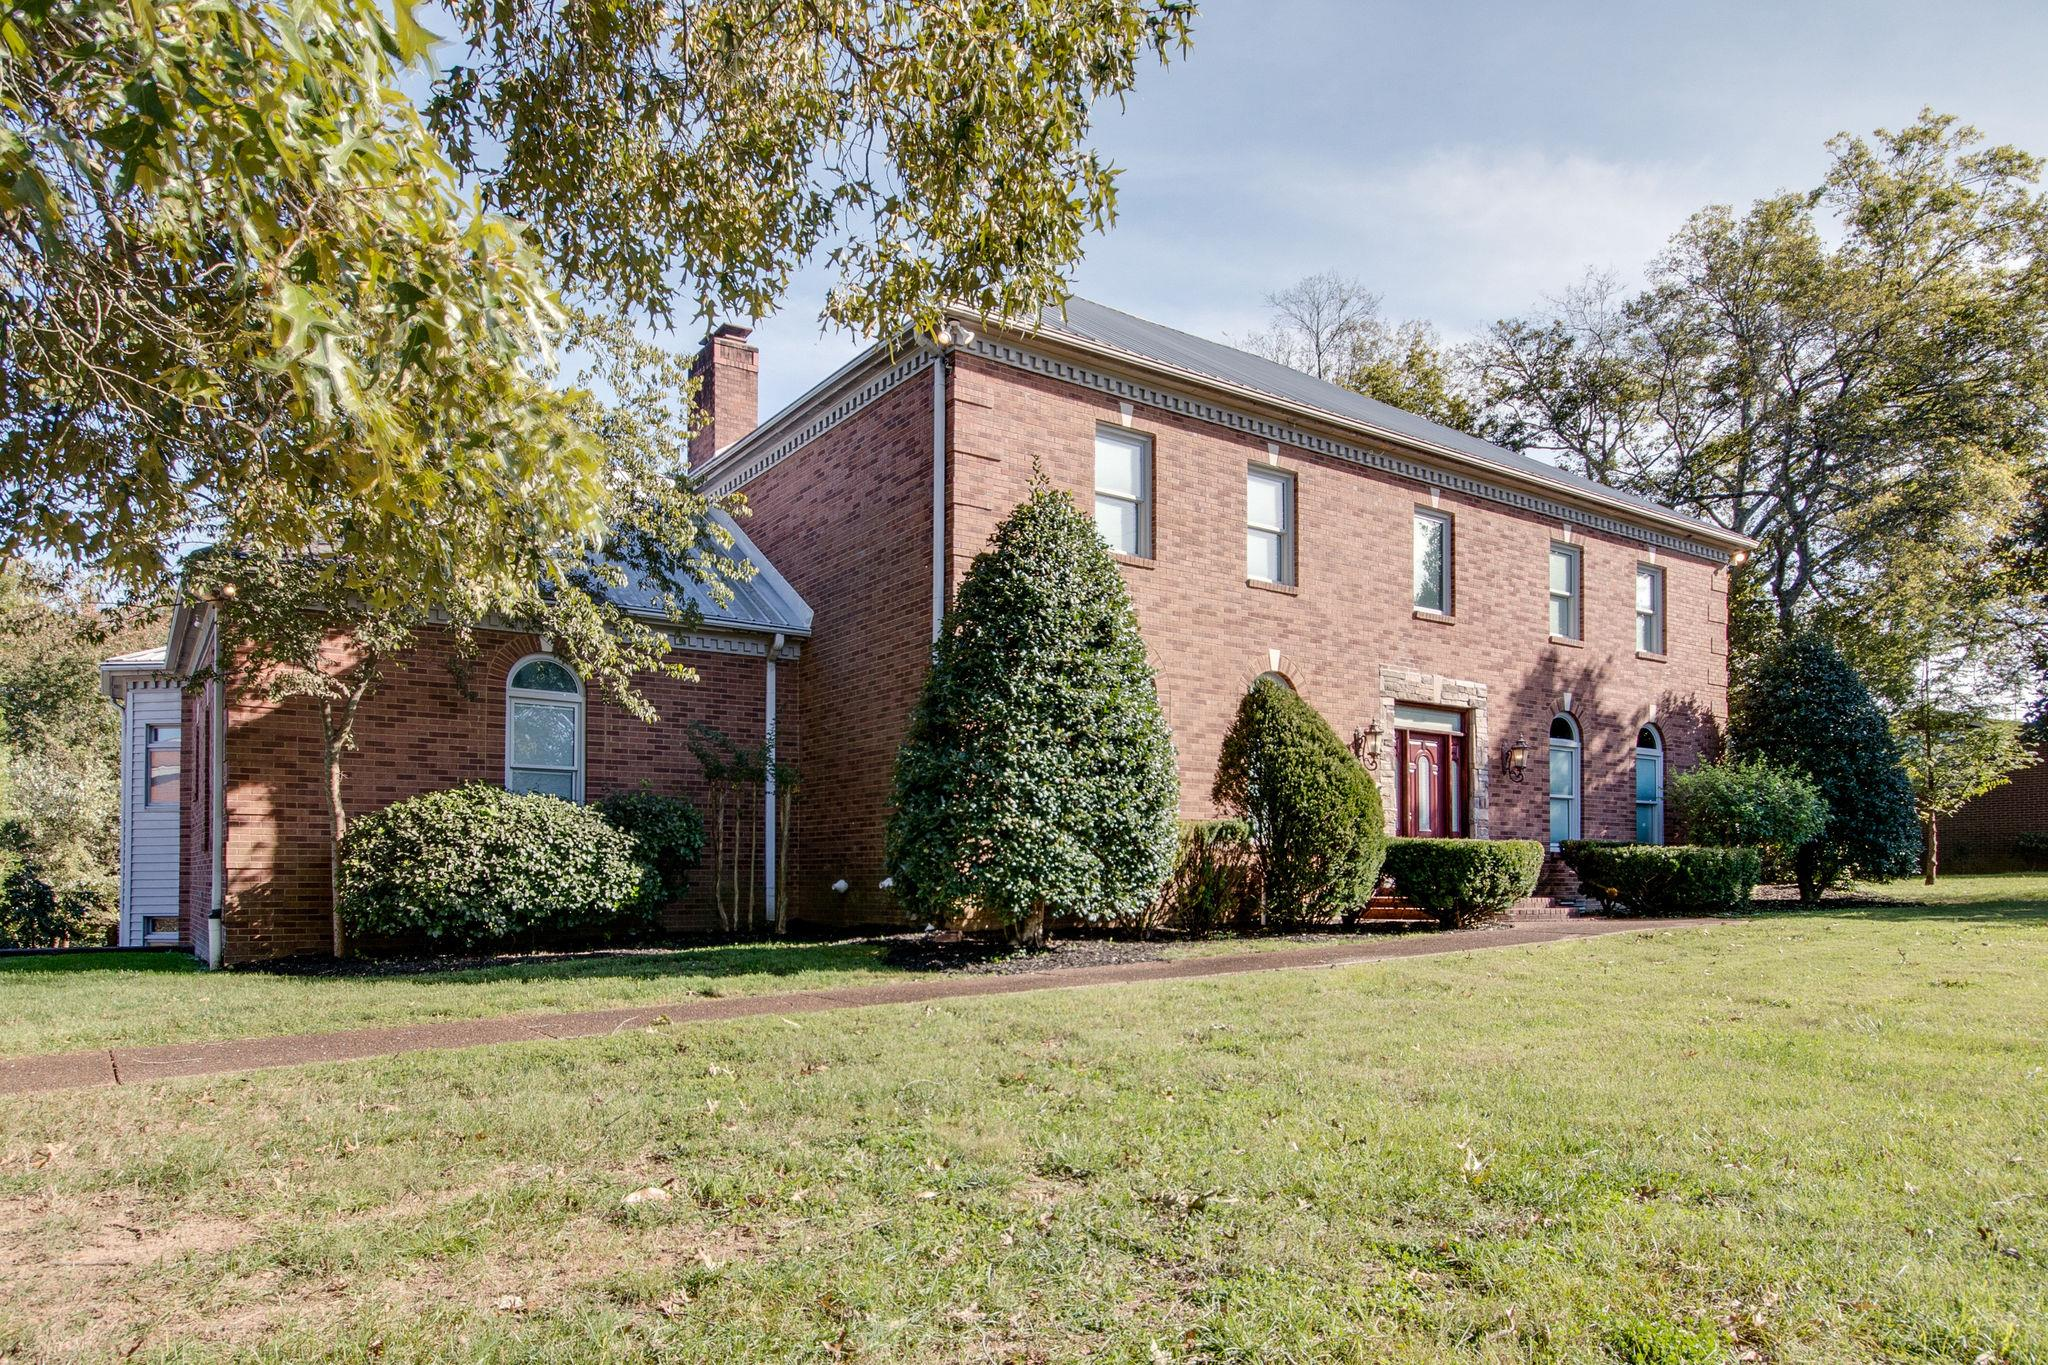 207 RISING SUN TERRACE, Old Hickory, TN 37138 - Old Hickory, TN real estate listing